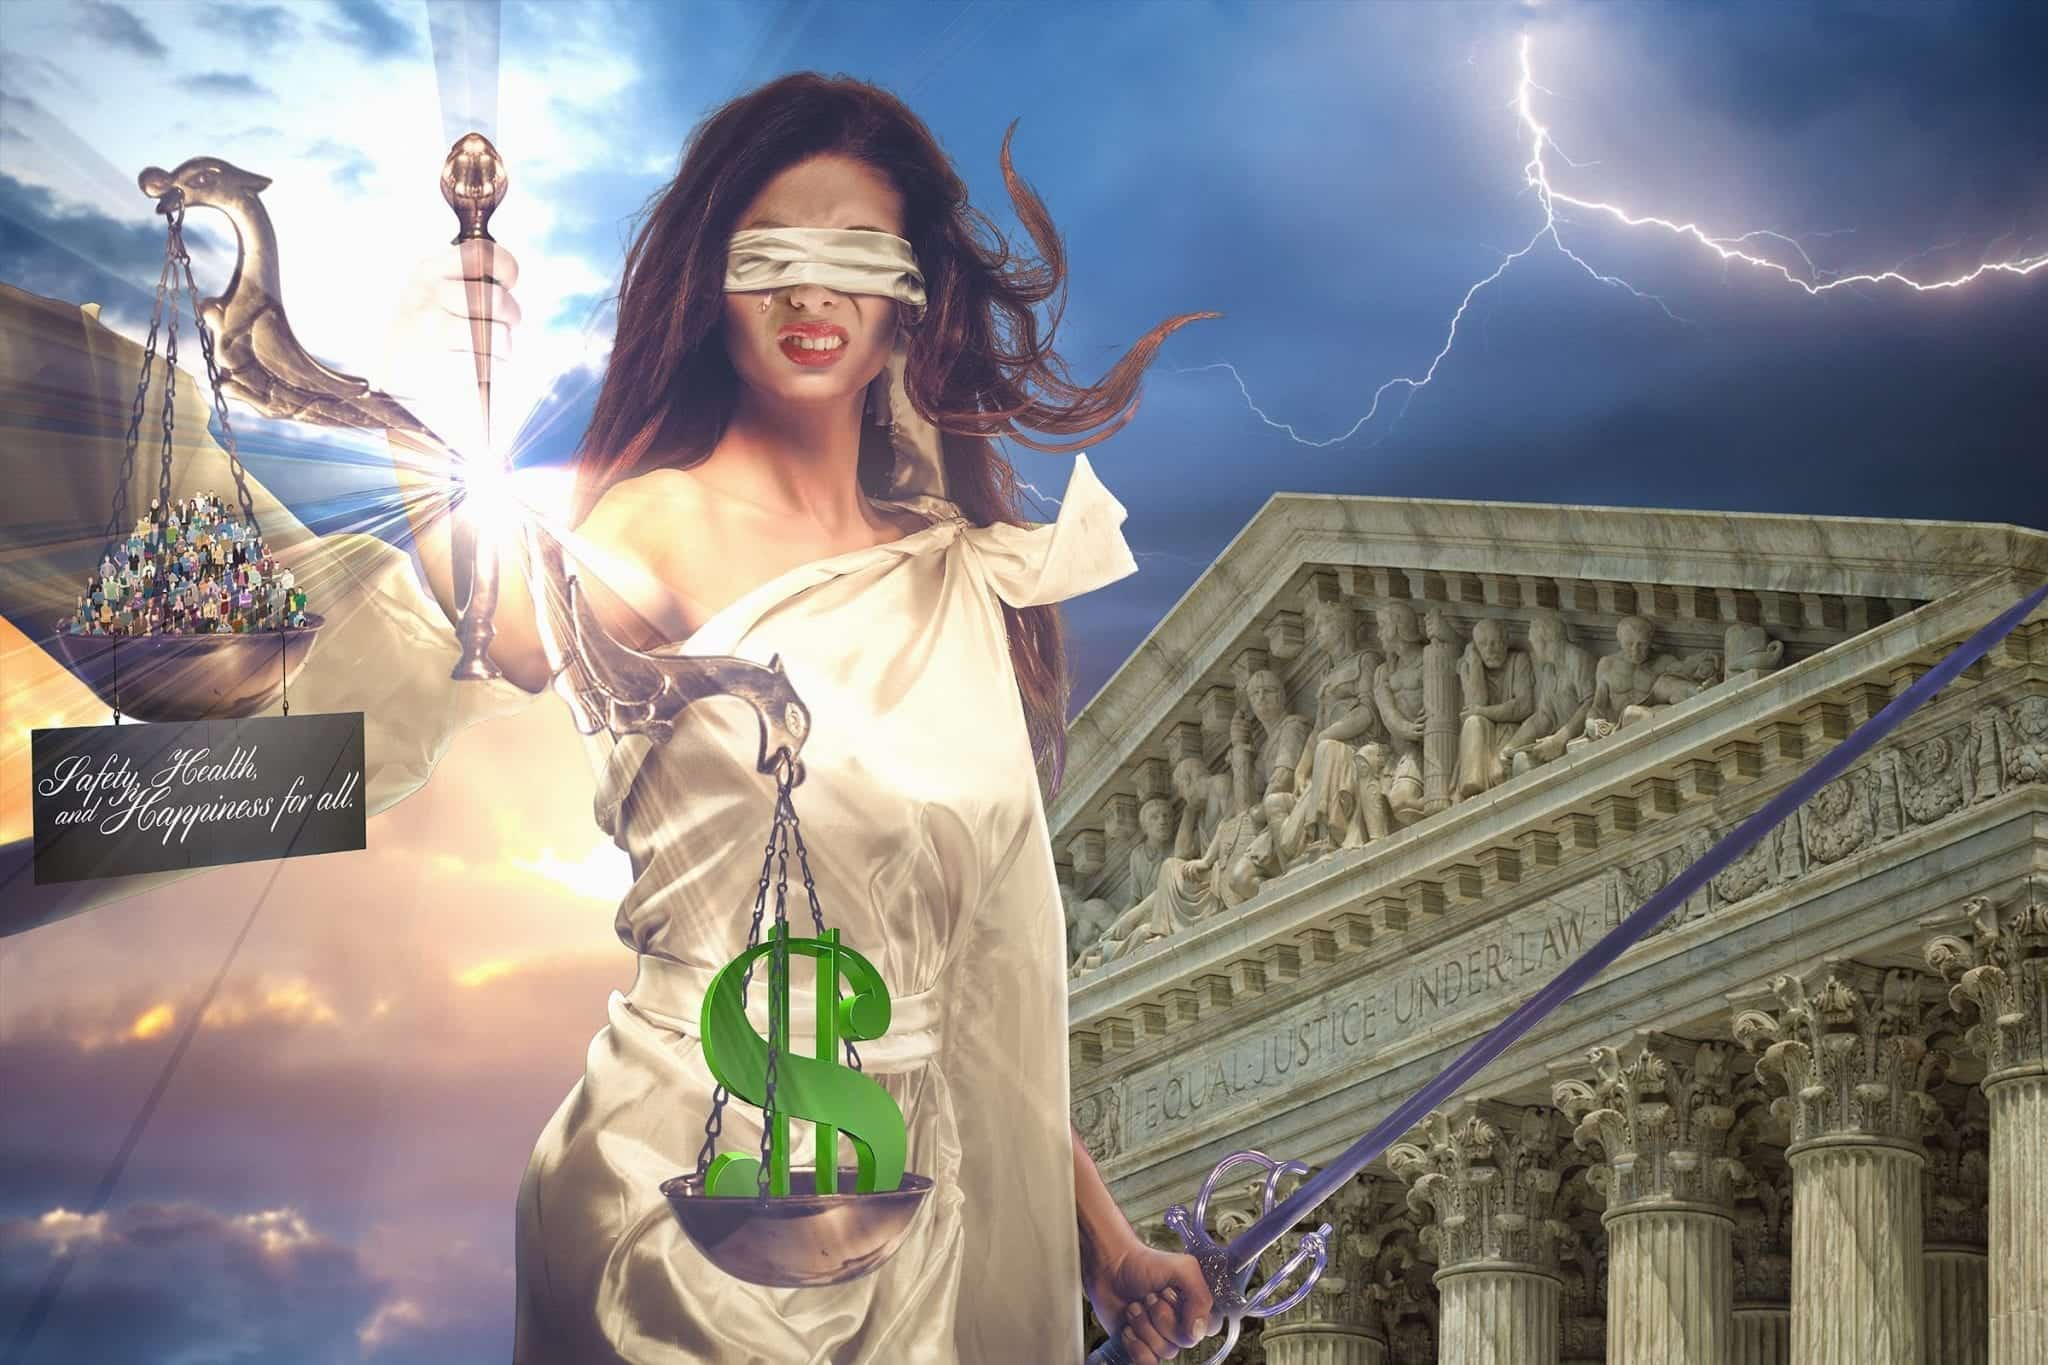 """Safety, health, and happiness for all;"" Lady Justice graphic by Neil Angeles."